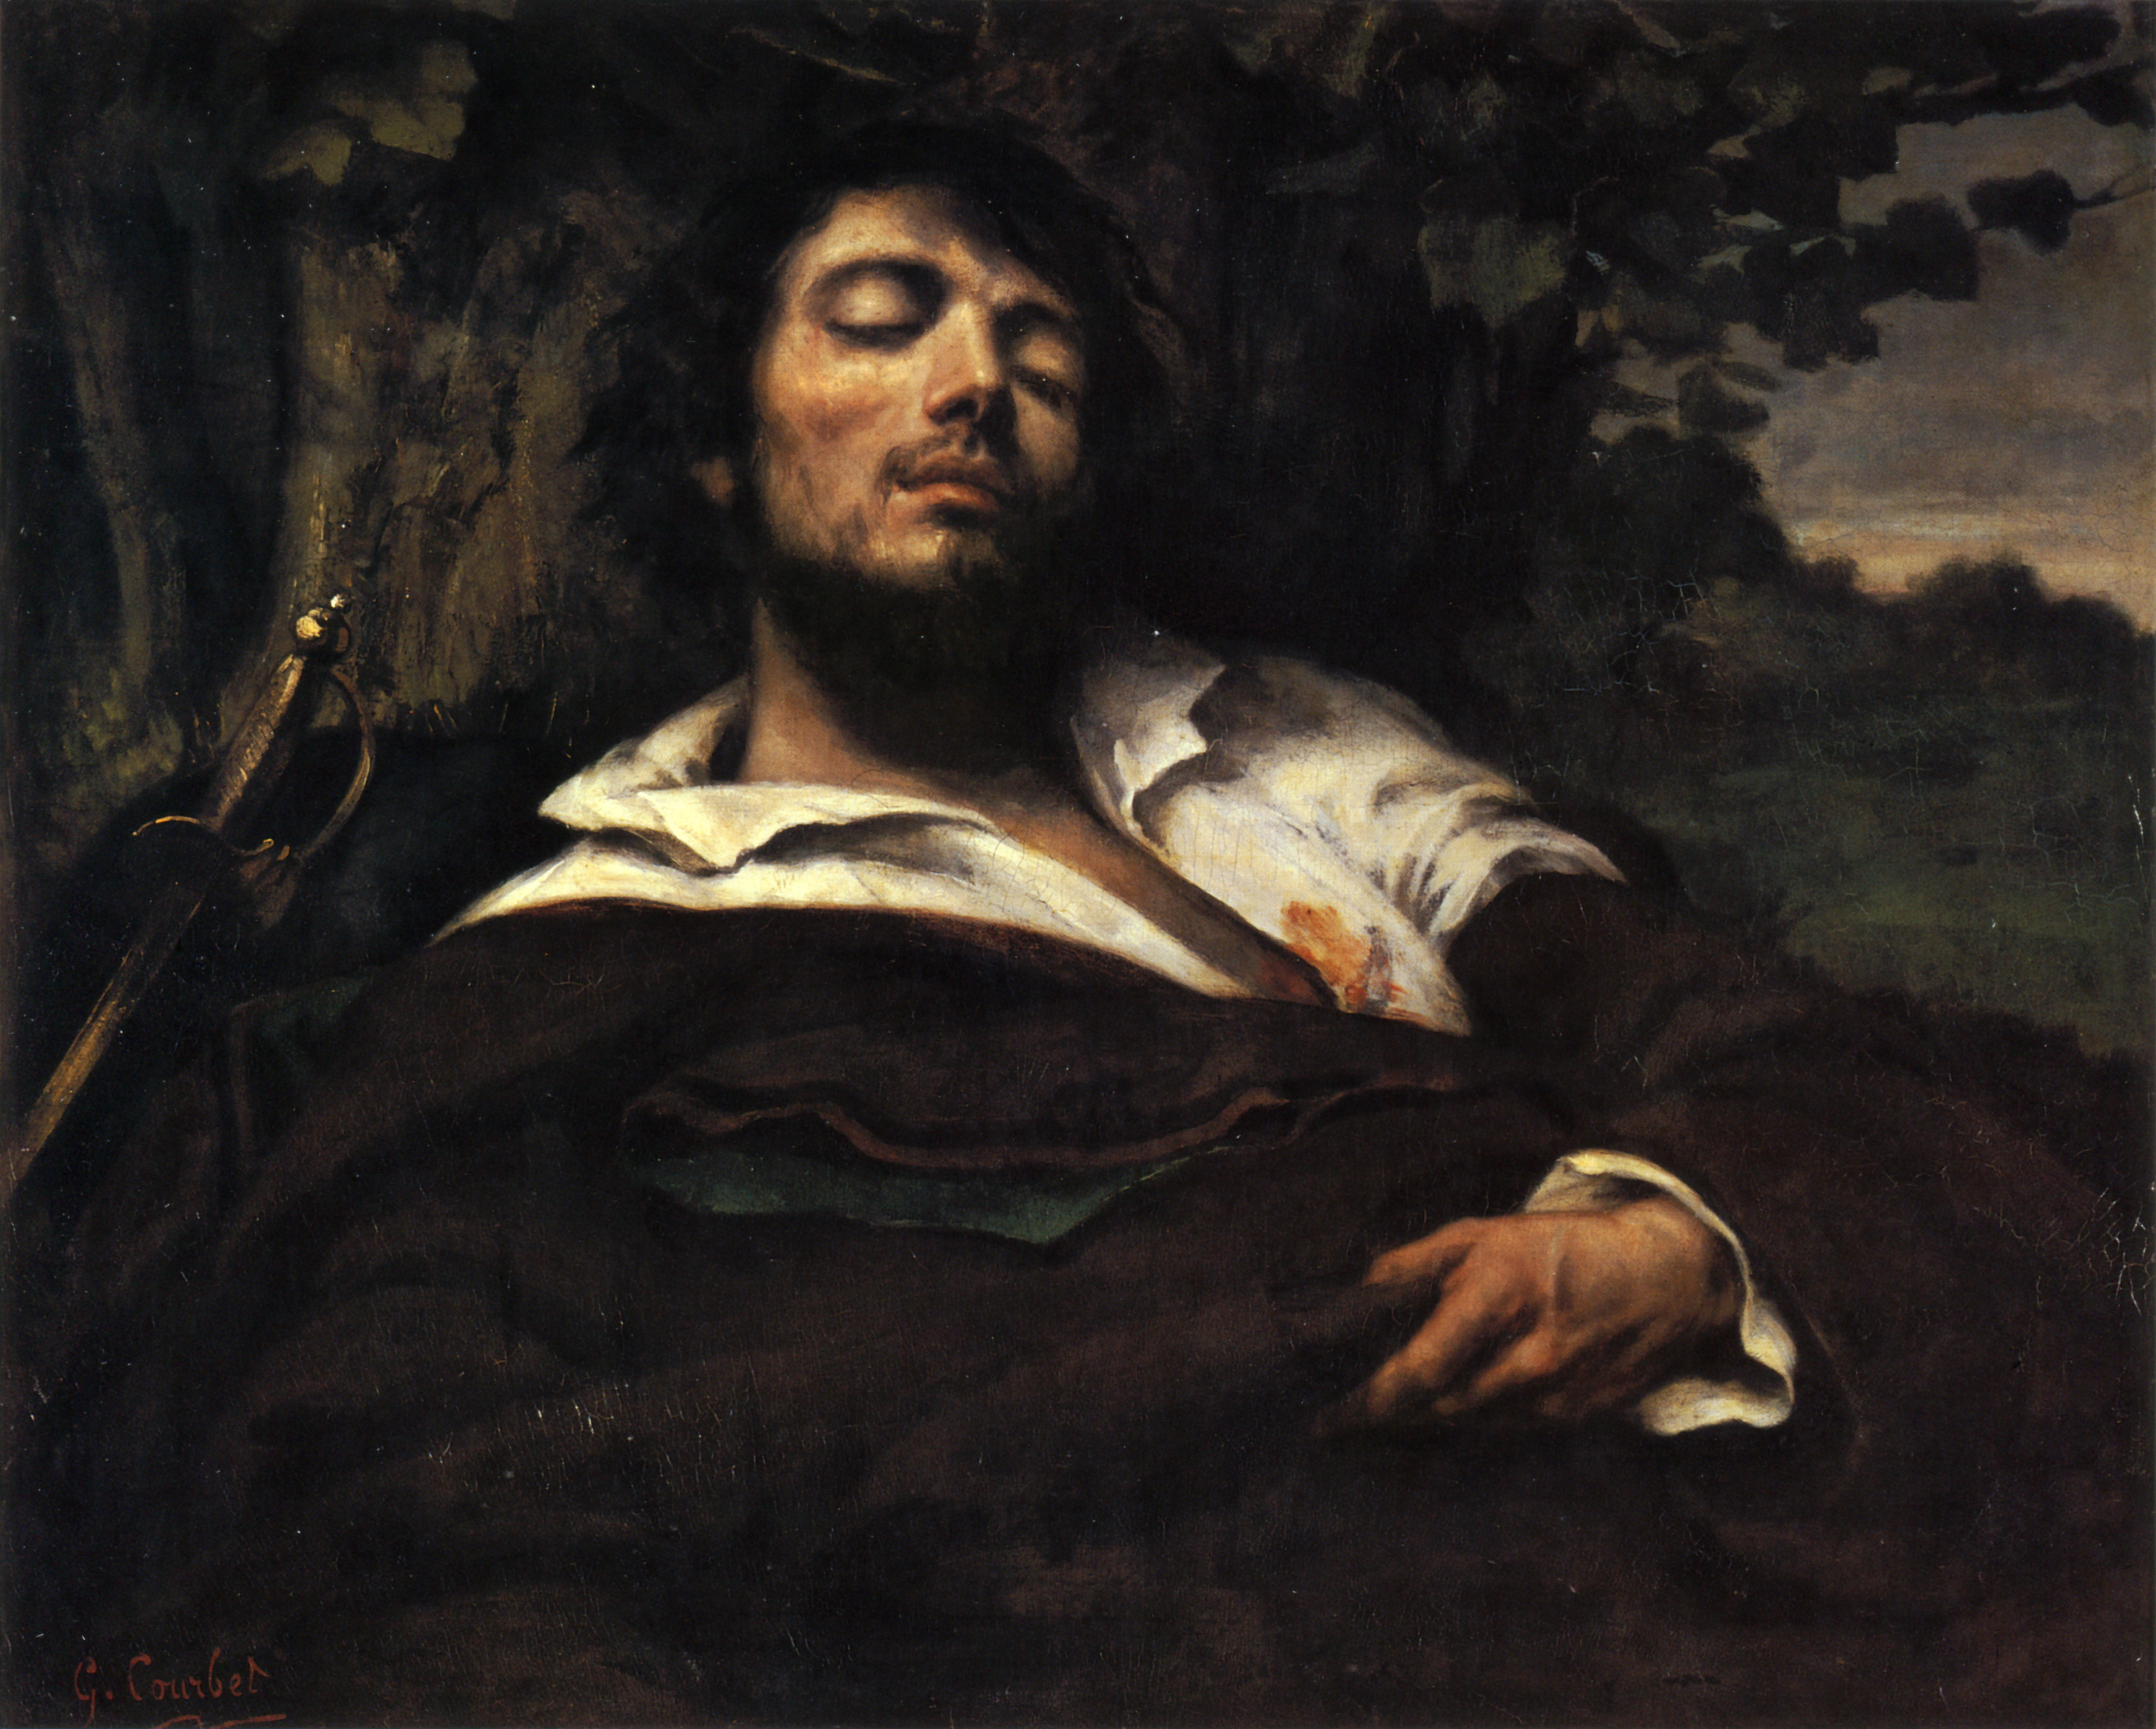 Portrait of the Artist called The Wounded Man (L'homme bless%C3%A9) by Gustave Courbet